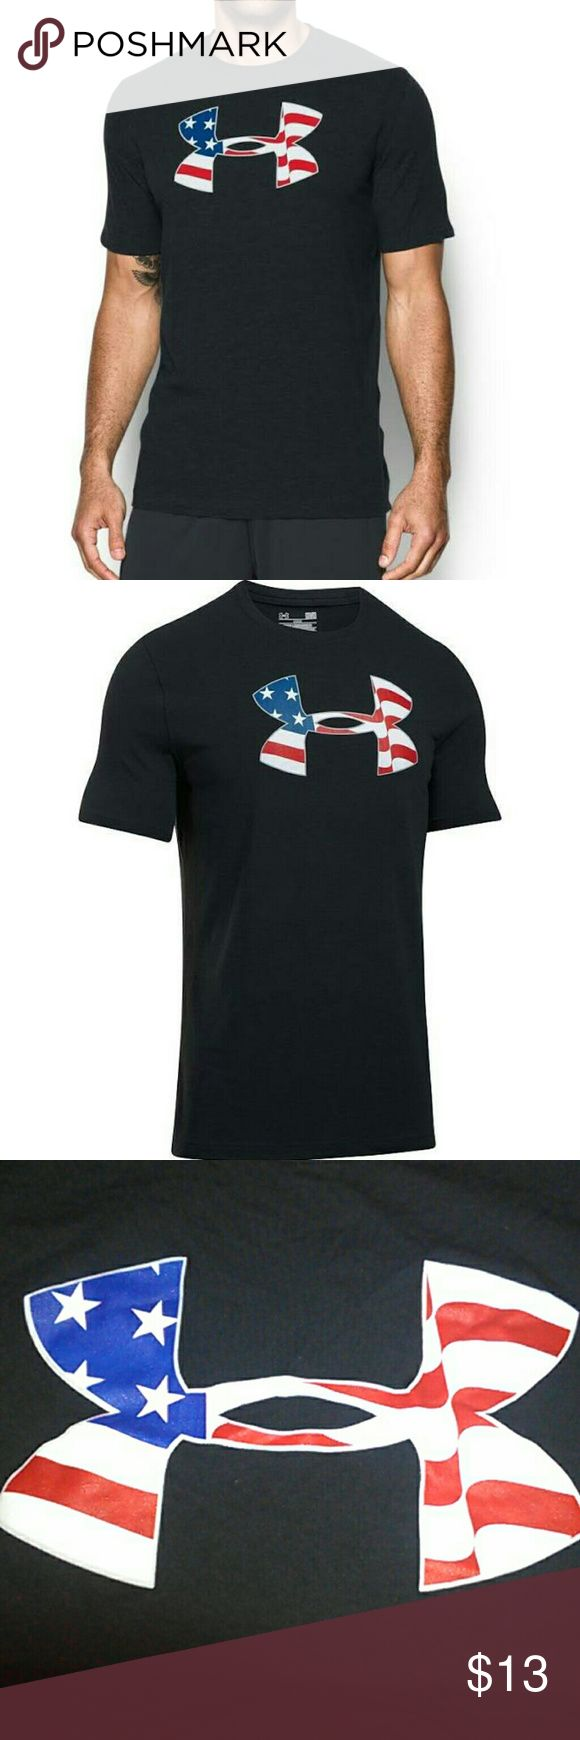 Under Armour Americana Pride Tee Make a stand when you wear the Under Armour Men's Americana Pride T-Shirt. Charged Cotton fabric offers the soft feel of cotton while also drying super-fast. Four-way stretch design boosts your mobility, moisture-wicking properties eliminate sweat, and anti-odor technology ensures all-day freshness. An American flag printed UA Big Logo graphic completes the look and shows off your pride. Be unstoppable in the UA Americana Pride T-Shirt. Under Armour Shirts…